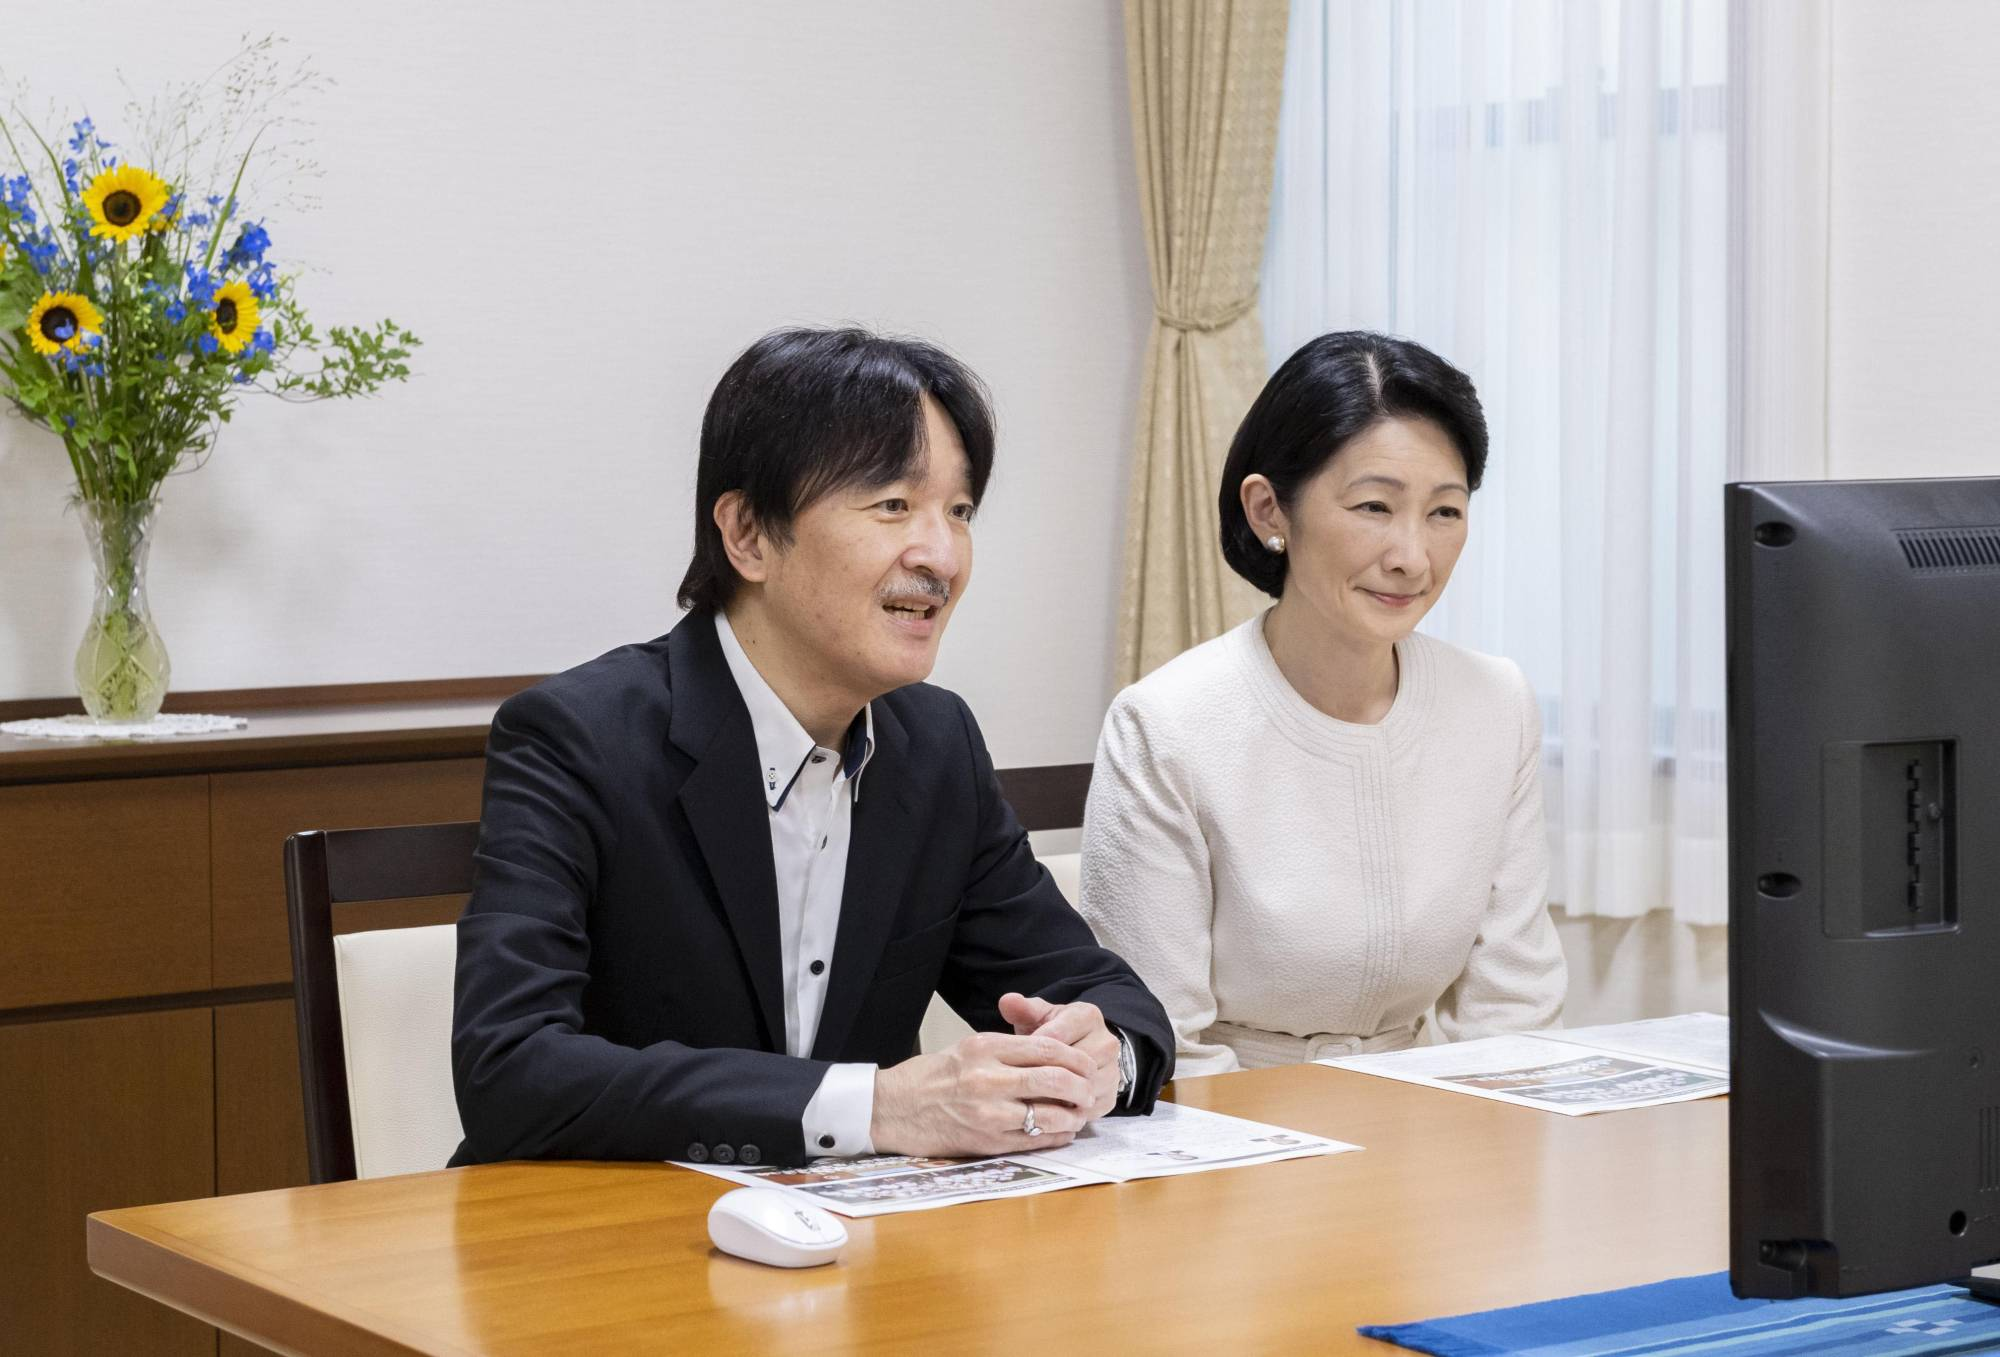 Crown Prince Akishino (left) talks with high school students online along with Crown Princess Kiko at their residence in Tokyo's Akasaka district in August. | IMPERIAL HOUSEHOLD AGENCY / VIA KYODO